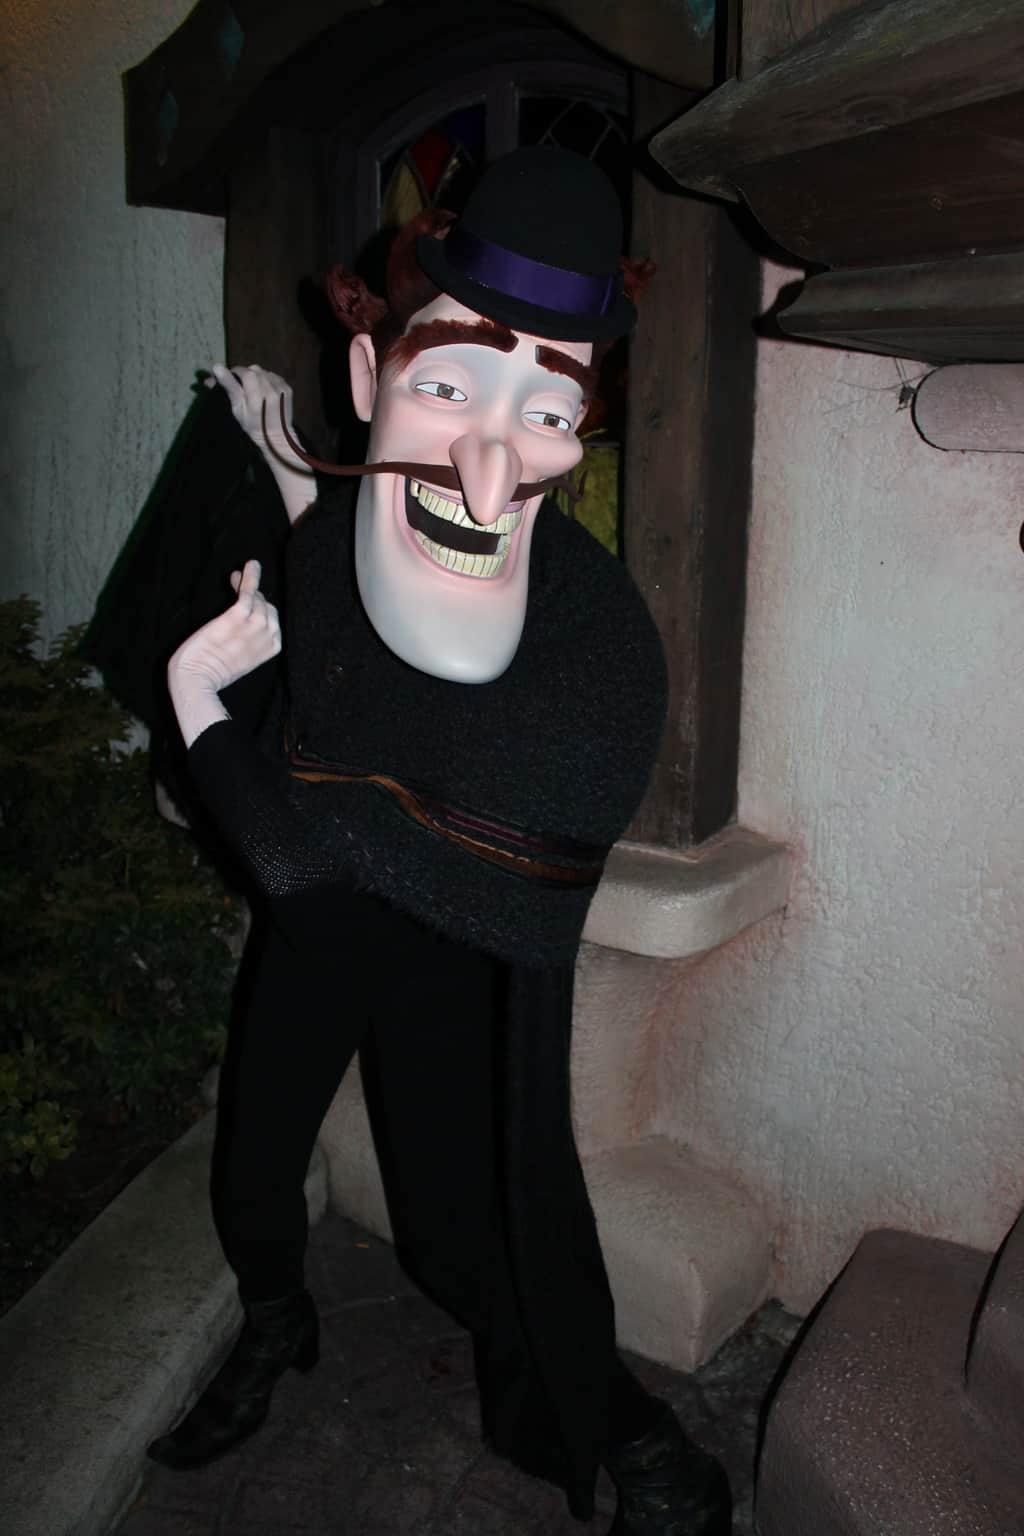 Bowler Hat Guy making an appereance during Halloween Event on the 31ste of October at DLP